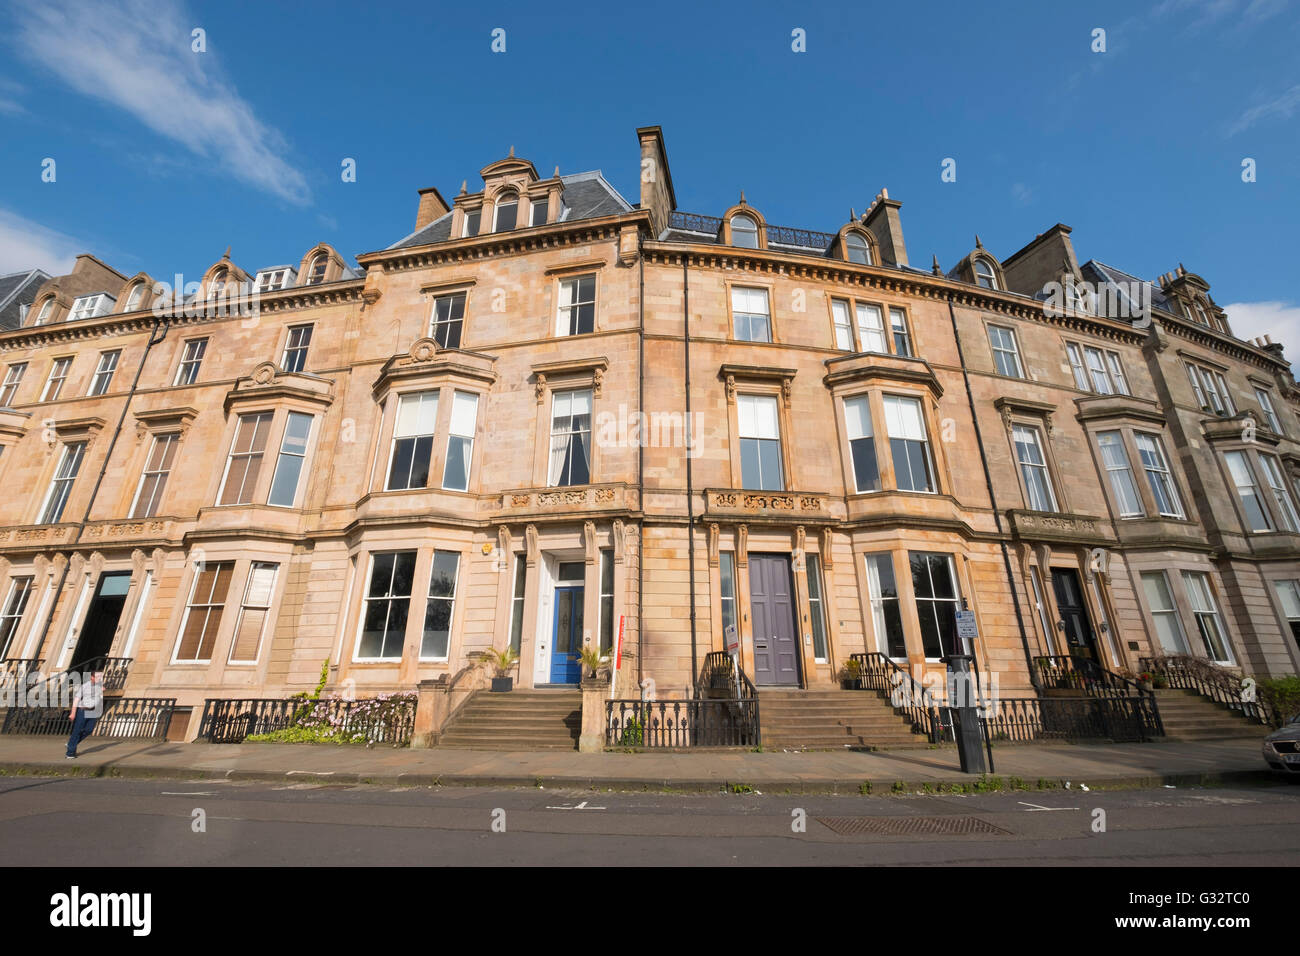 Elegant old apartment buildings on Park Terrace in west end of Glasgow , Scotland, United Kingdom - Stock Image